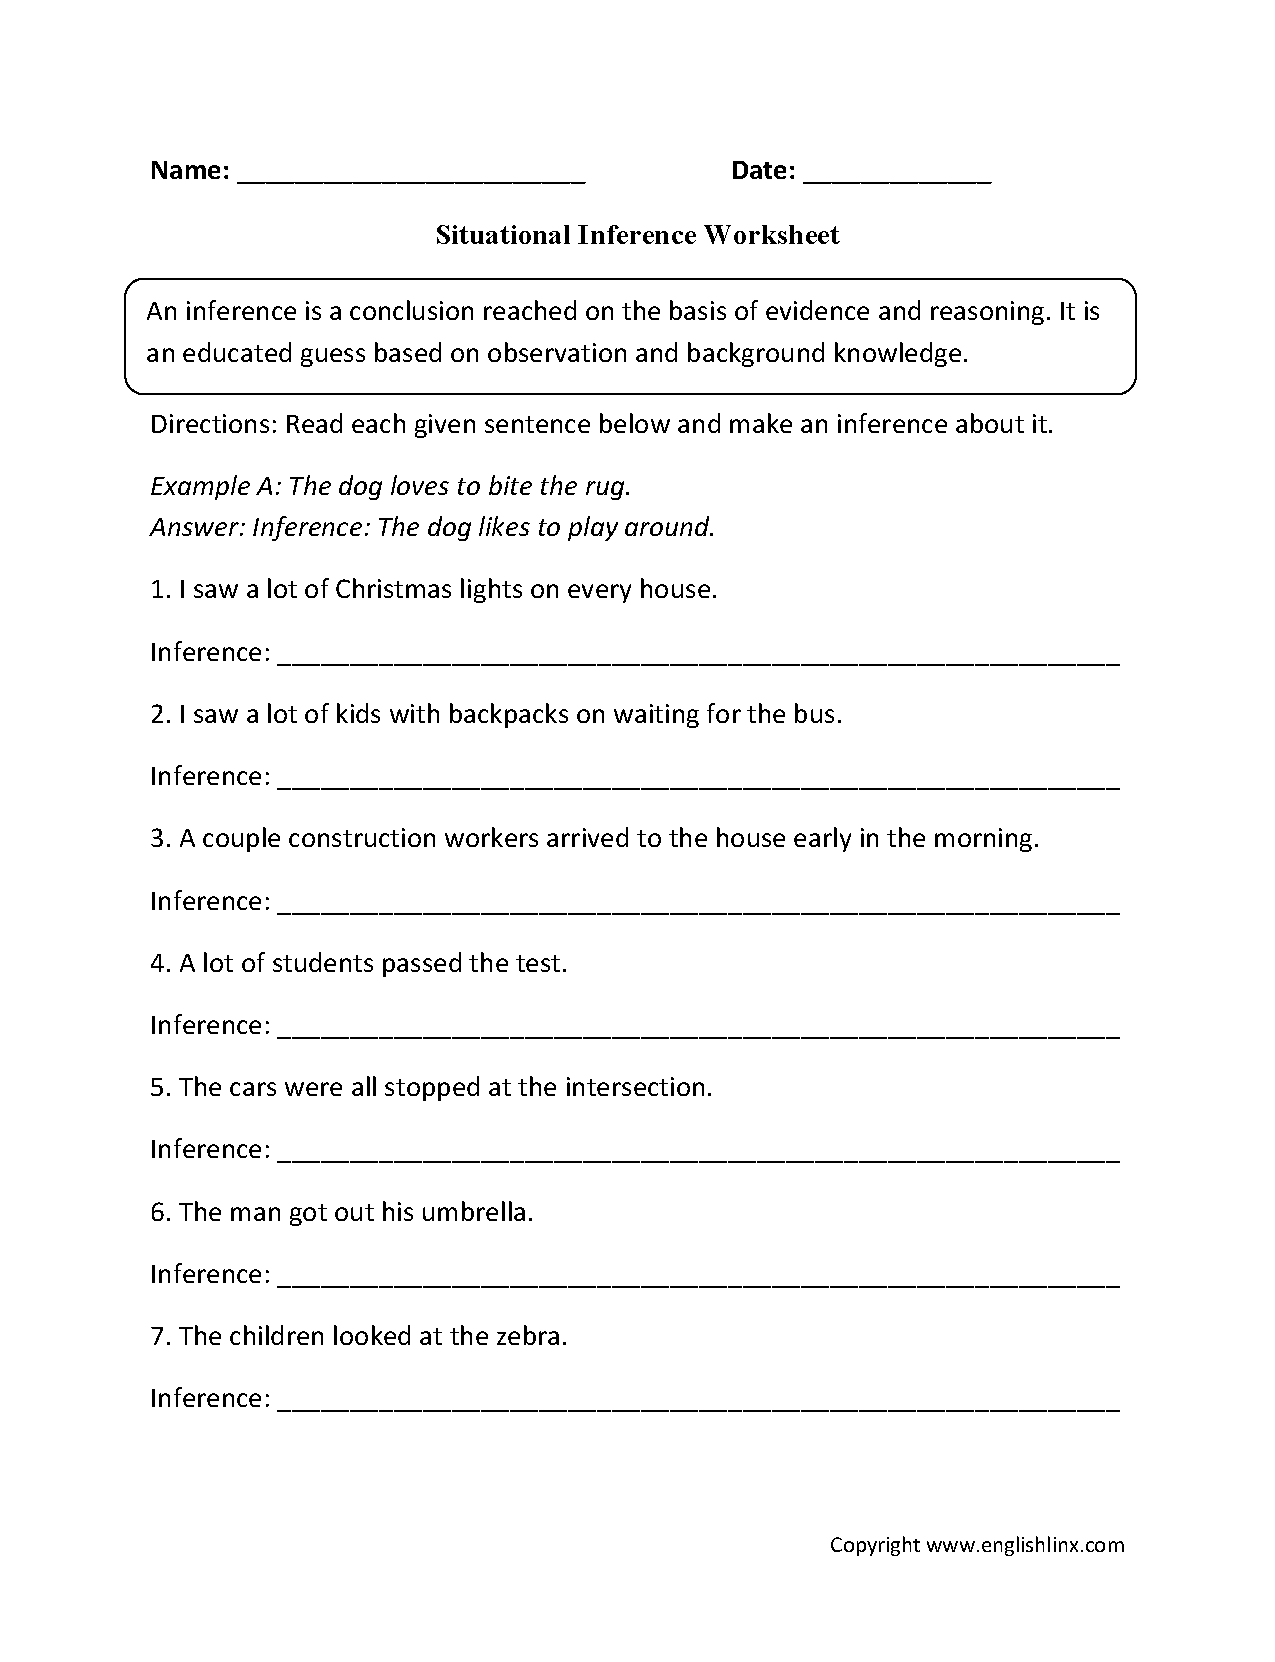 Worksheets Inferences Worksheet 4 reading worksheets inference worksheets